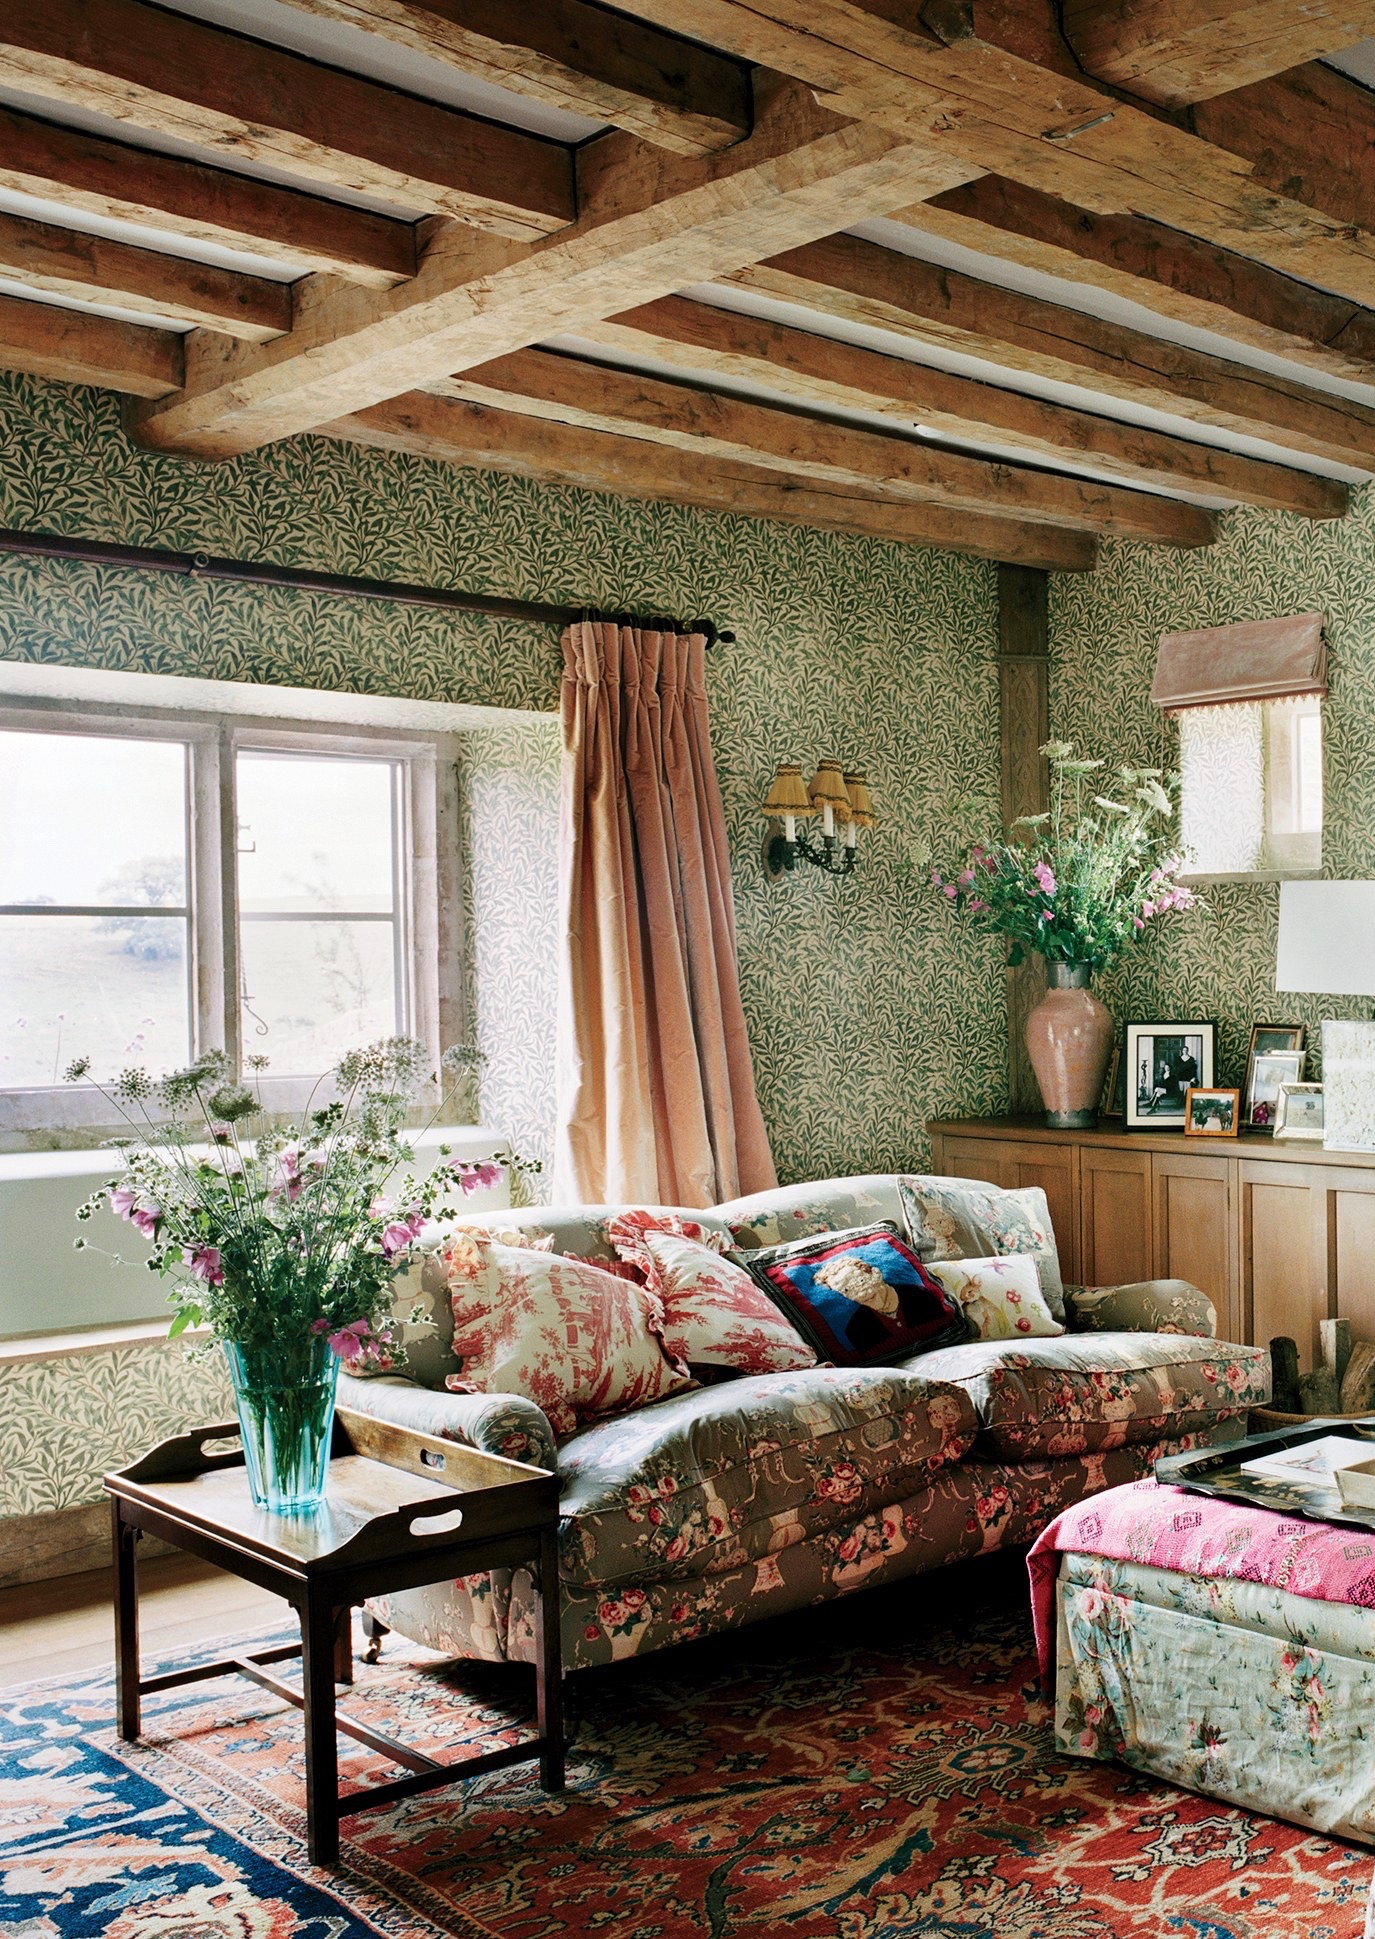 House Decoration Images How To Decorate Your Home In The English Country House